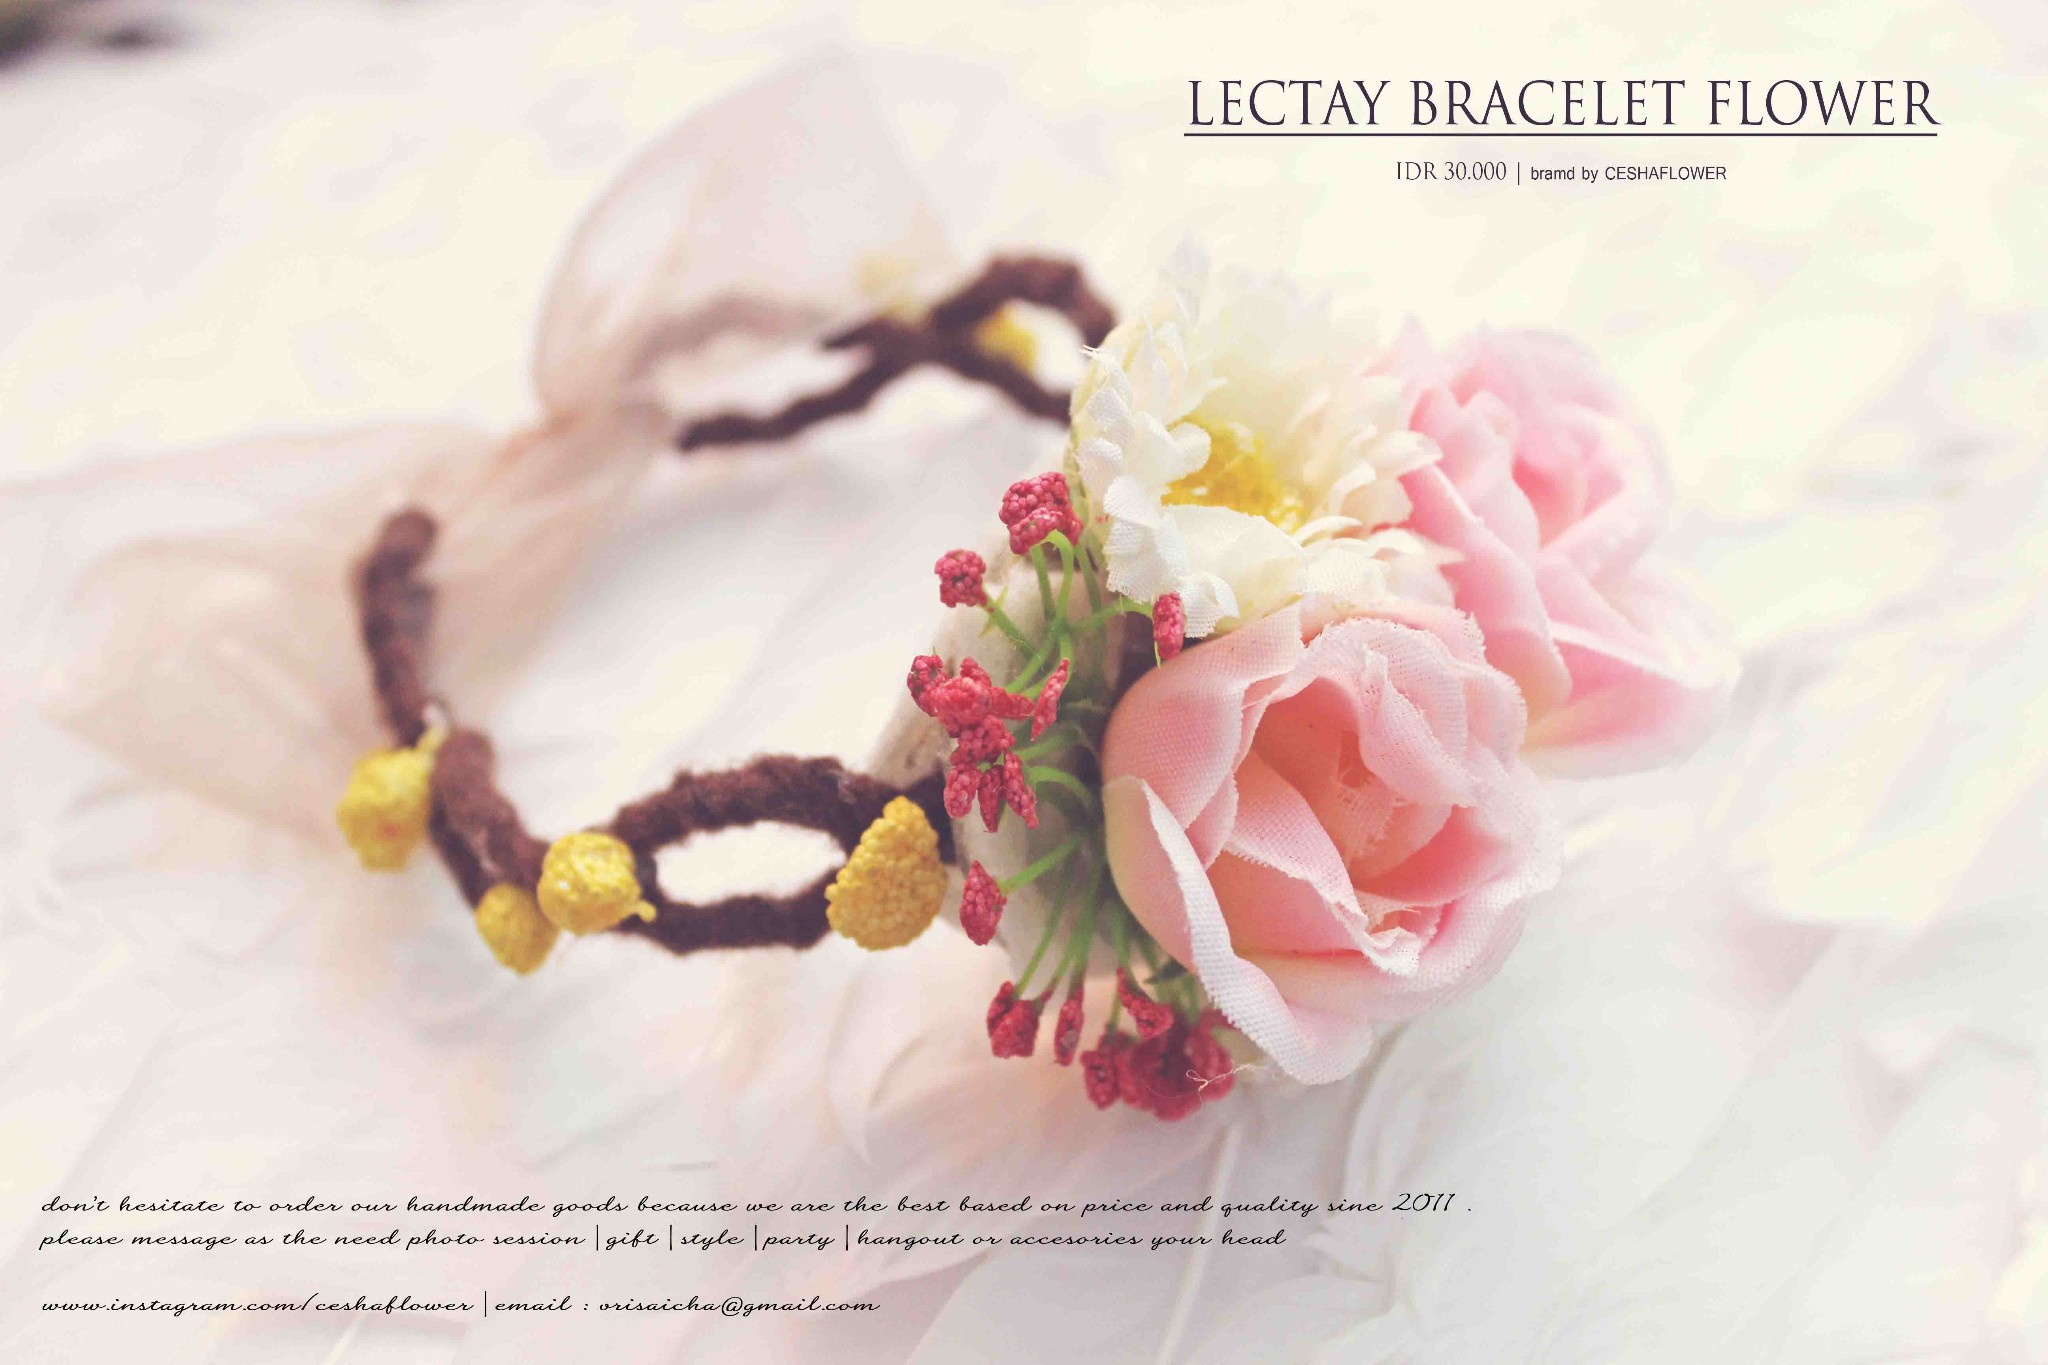 Gelanh bunga daftar harga terlengkap indonesia terkini harga jual gelang gelang bunga bros hiasan jilbab flower crown shabby chic izmirmasajfo Image collections